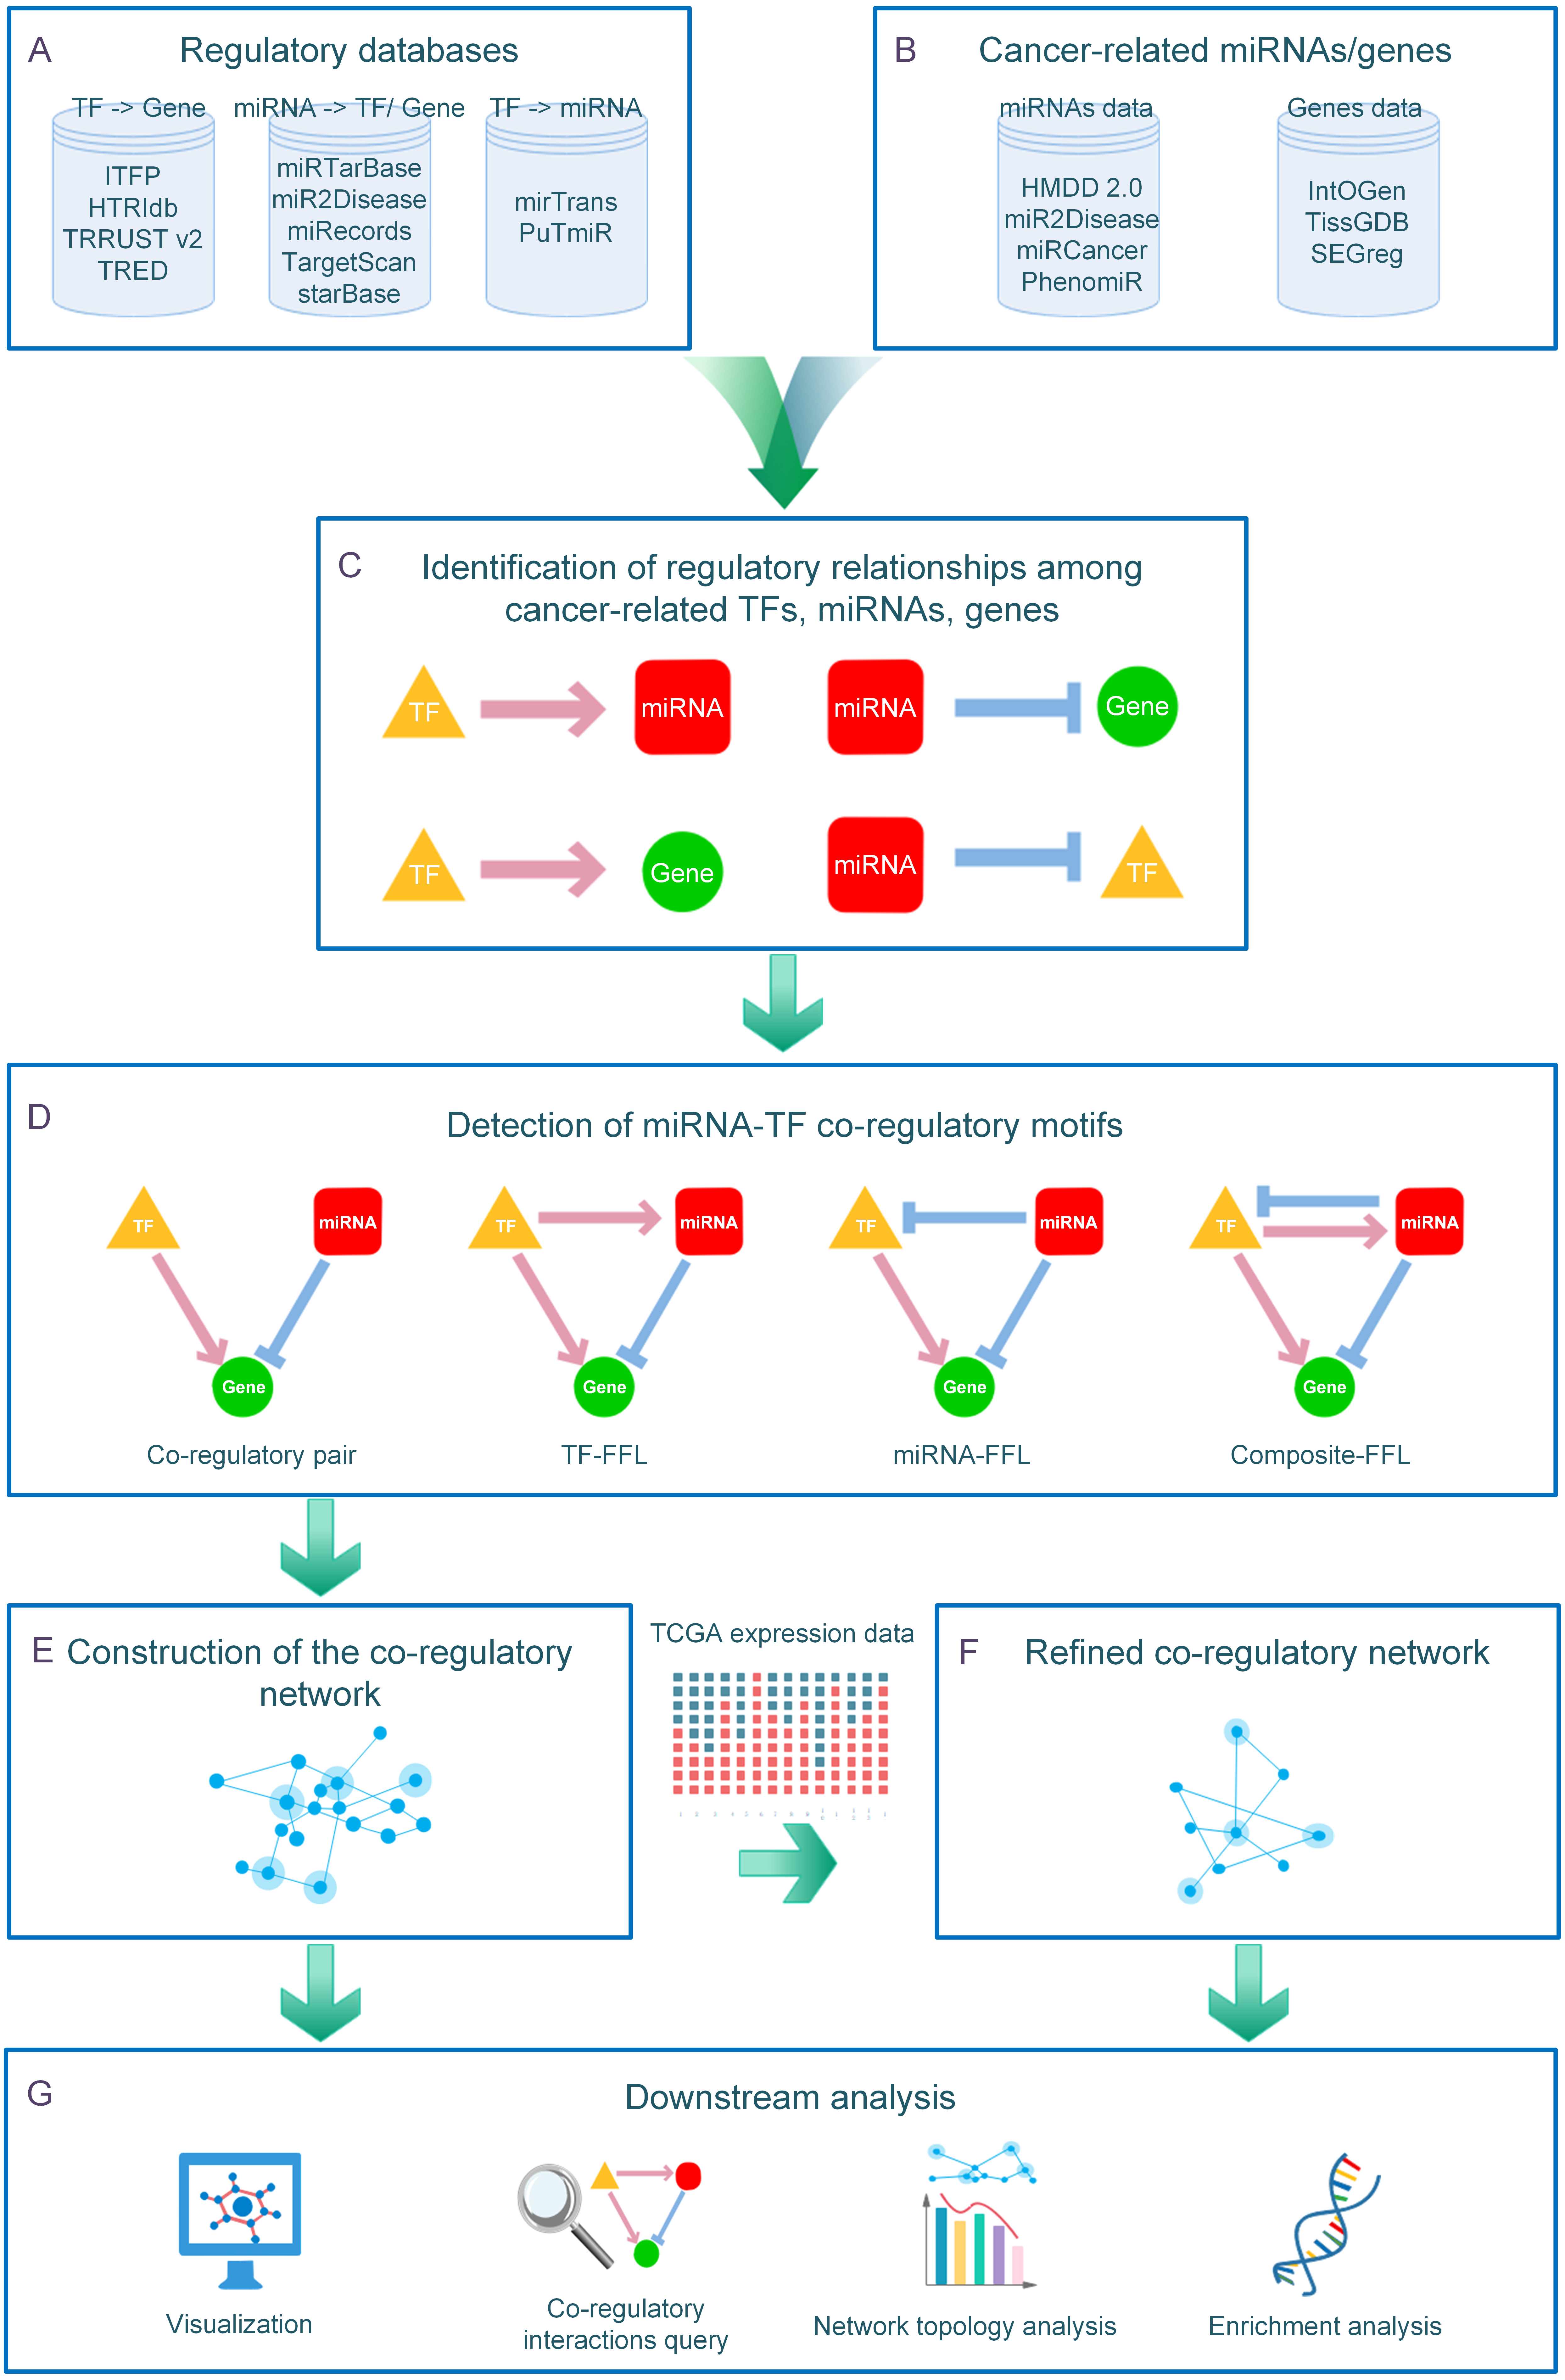 CMTCN: a web tool for investigating cancer-specific microRNA